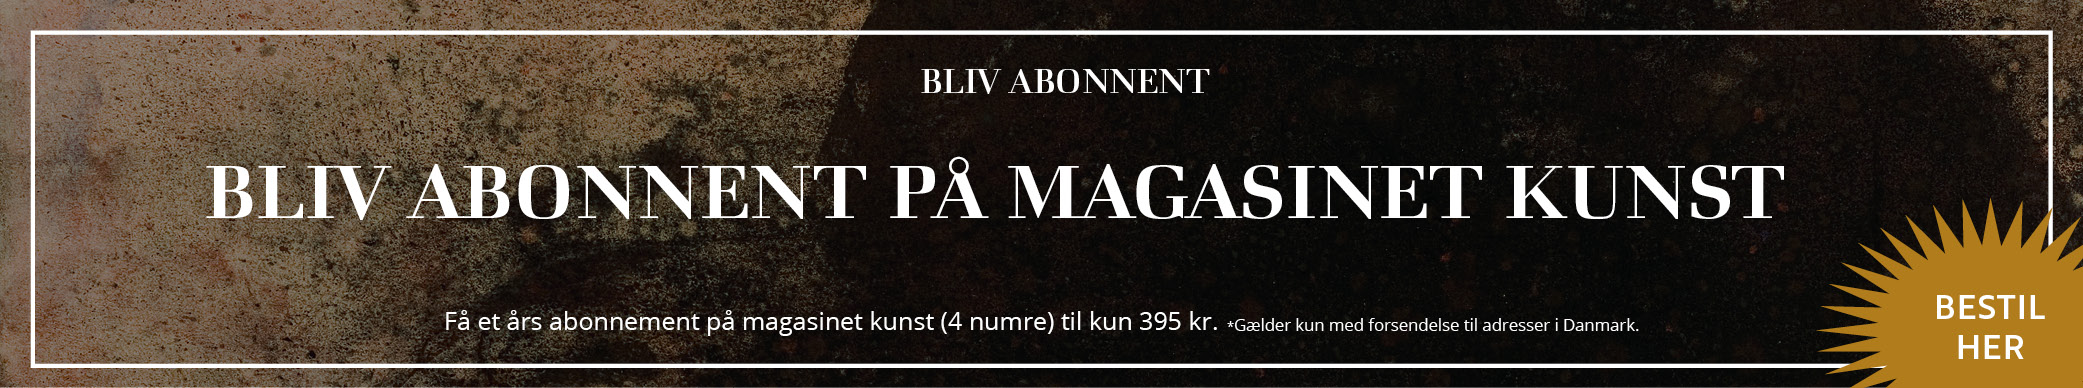 Årsabonnement på magasinet kunst